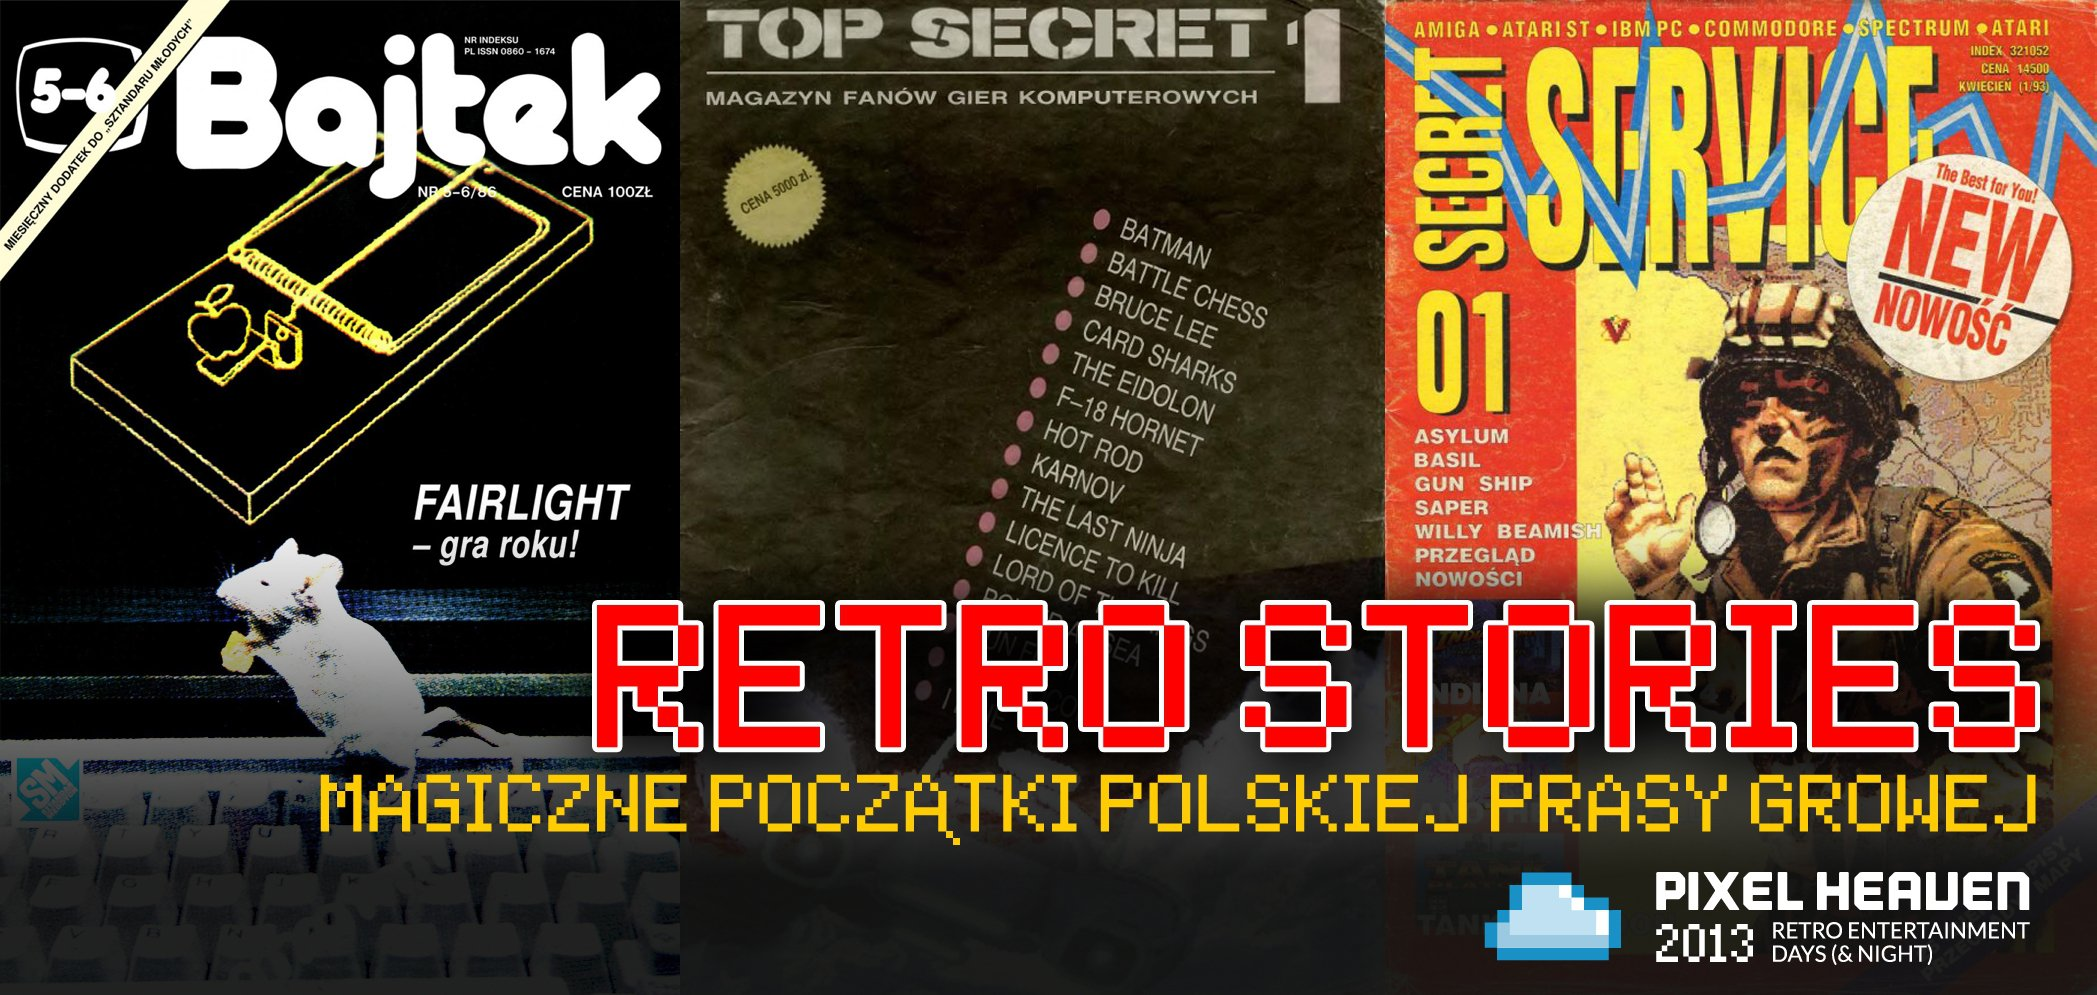 Bajtek, Top Secret i Secret Service na Pixel Heaven